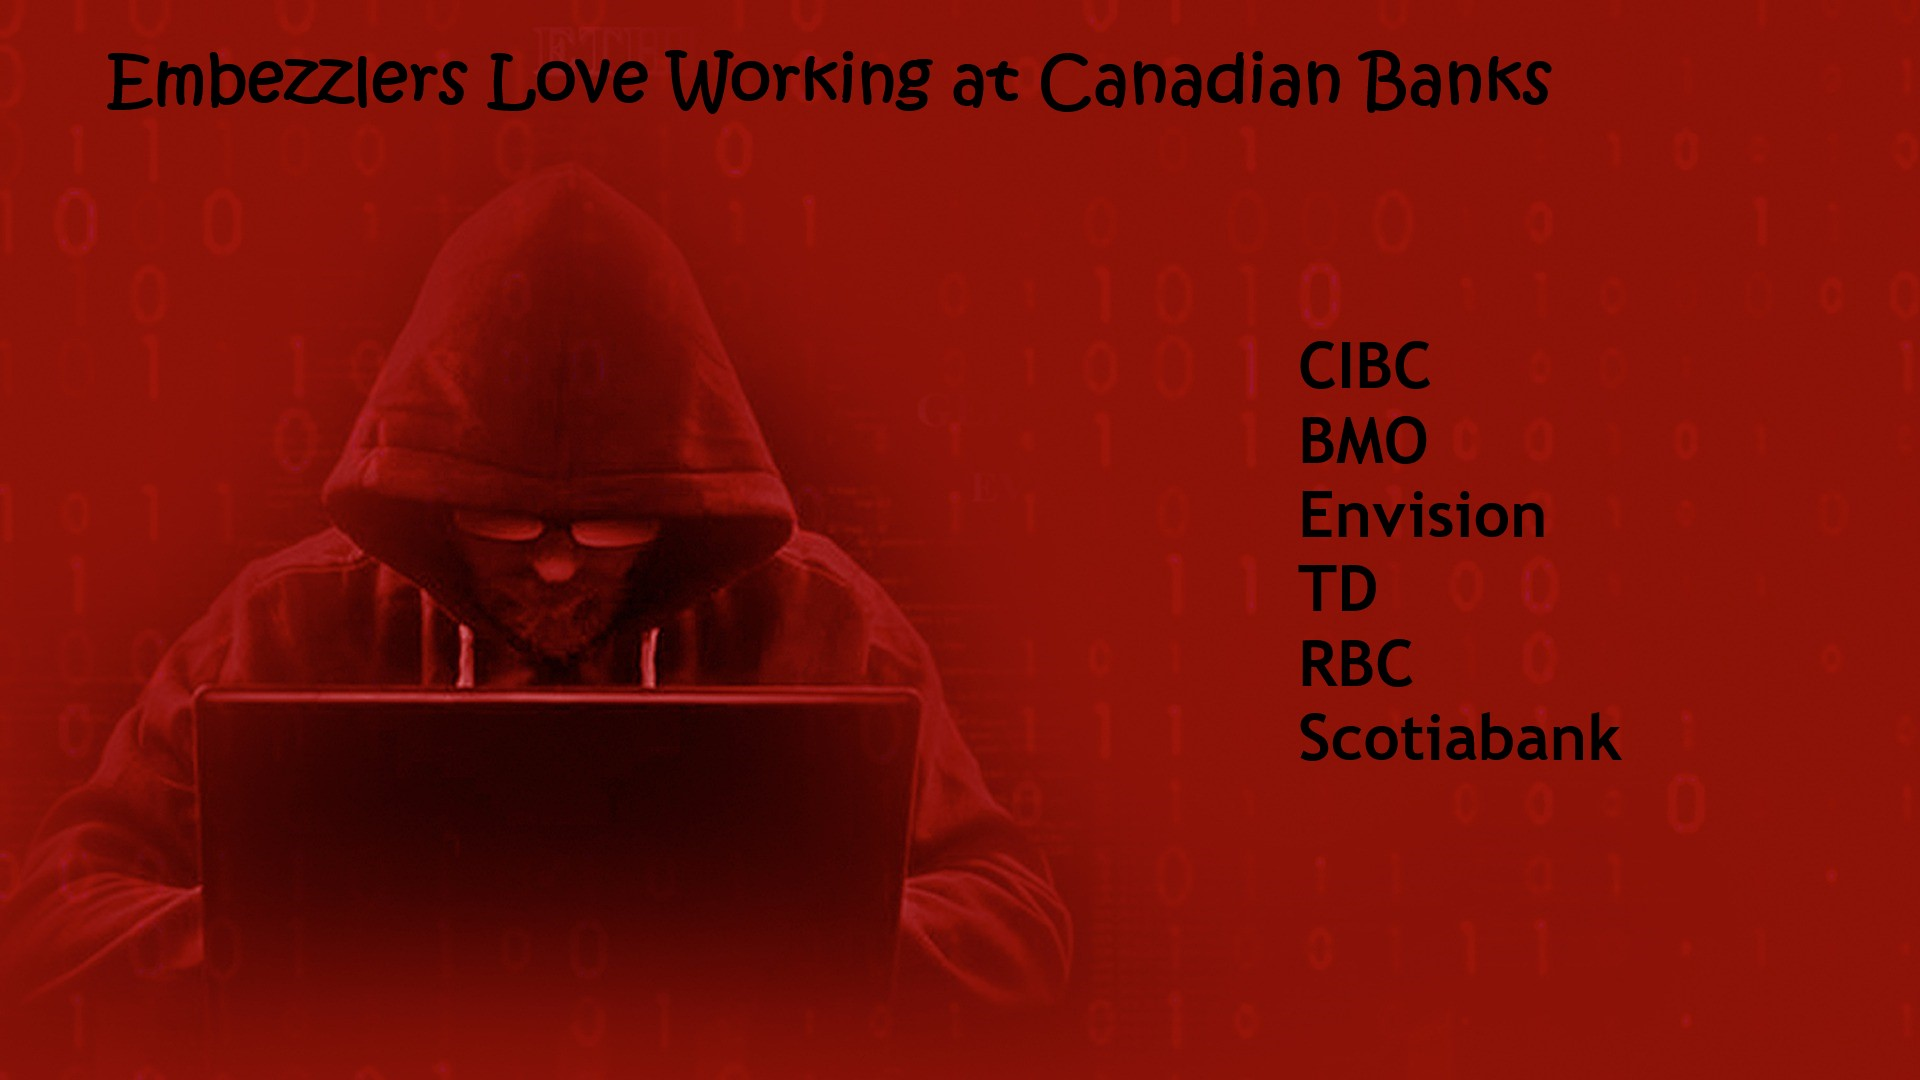 Embezzlers Love Working at Canadian Banks